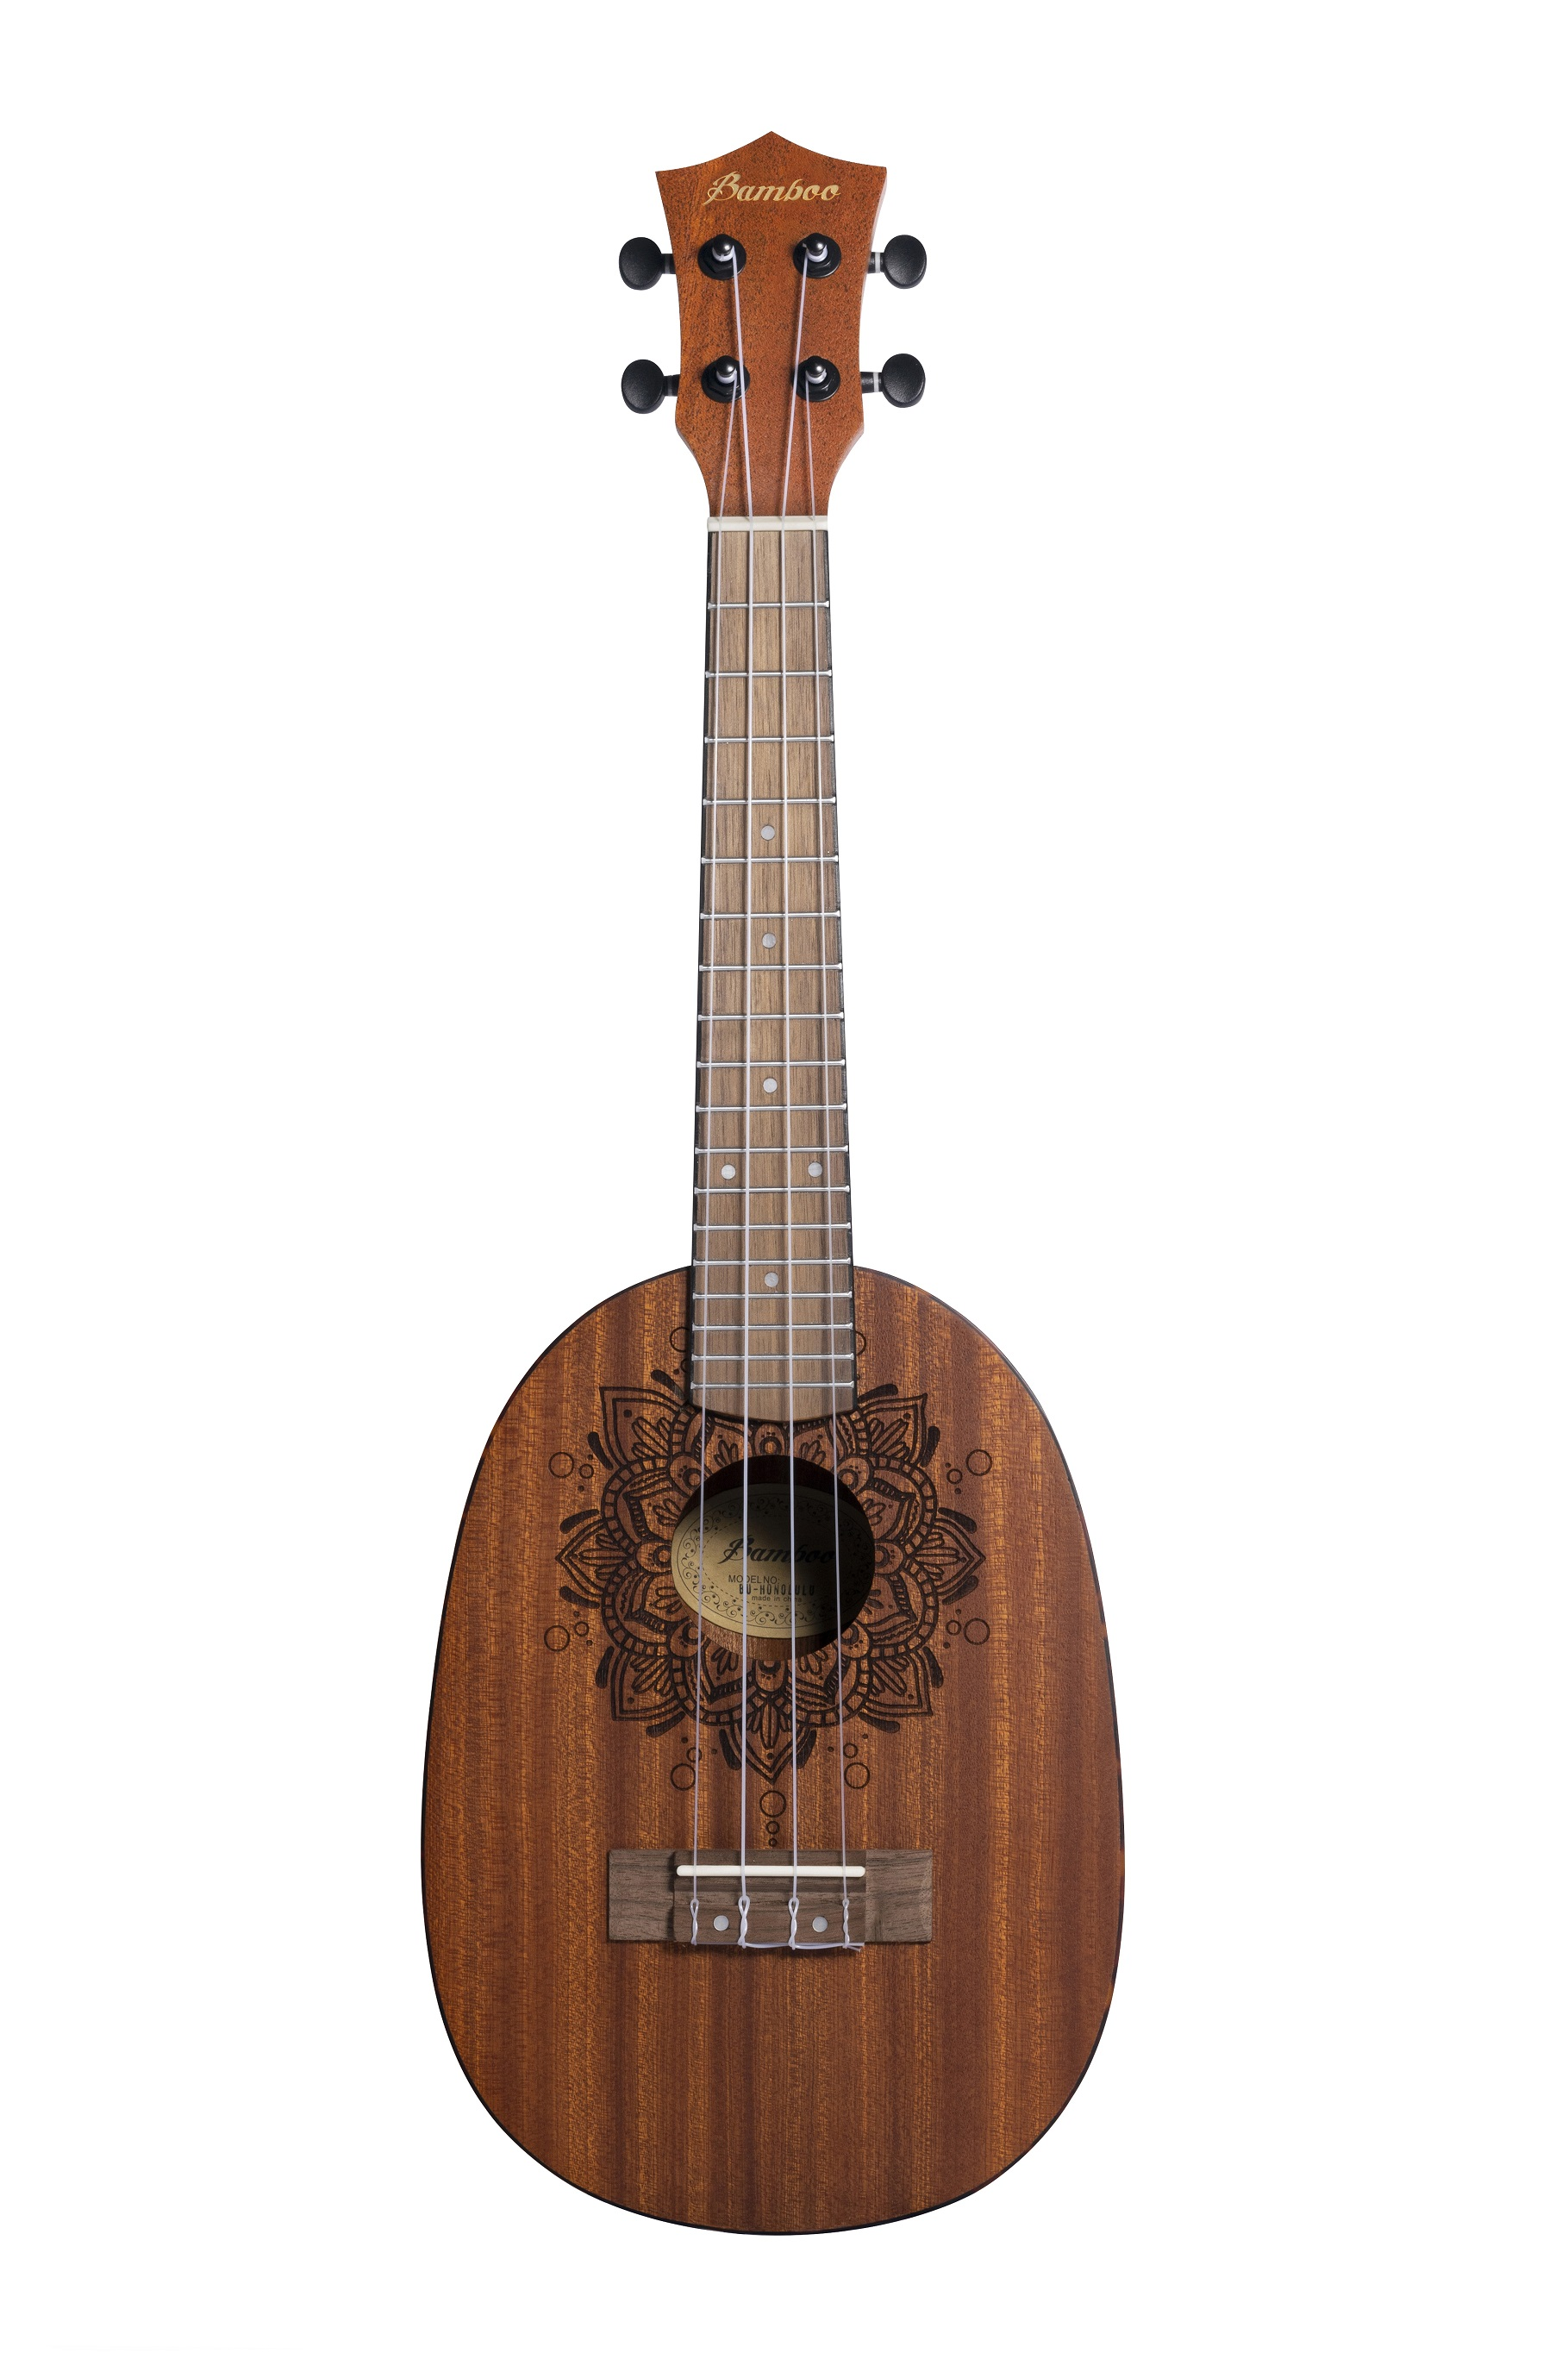 BAMBOO Honolulu Concert Ukulele Earth Series Acoustic | For Beginners and Professionals | Sapele & Walnut | With Gig Bag (New Generation)